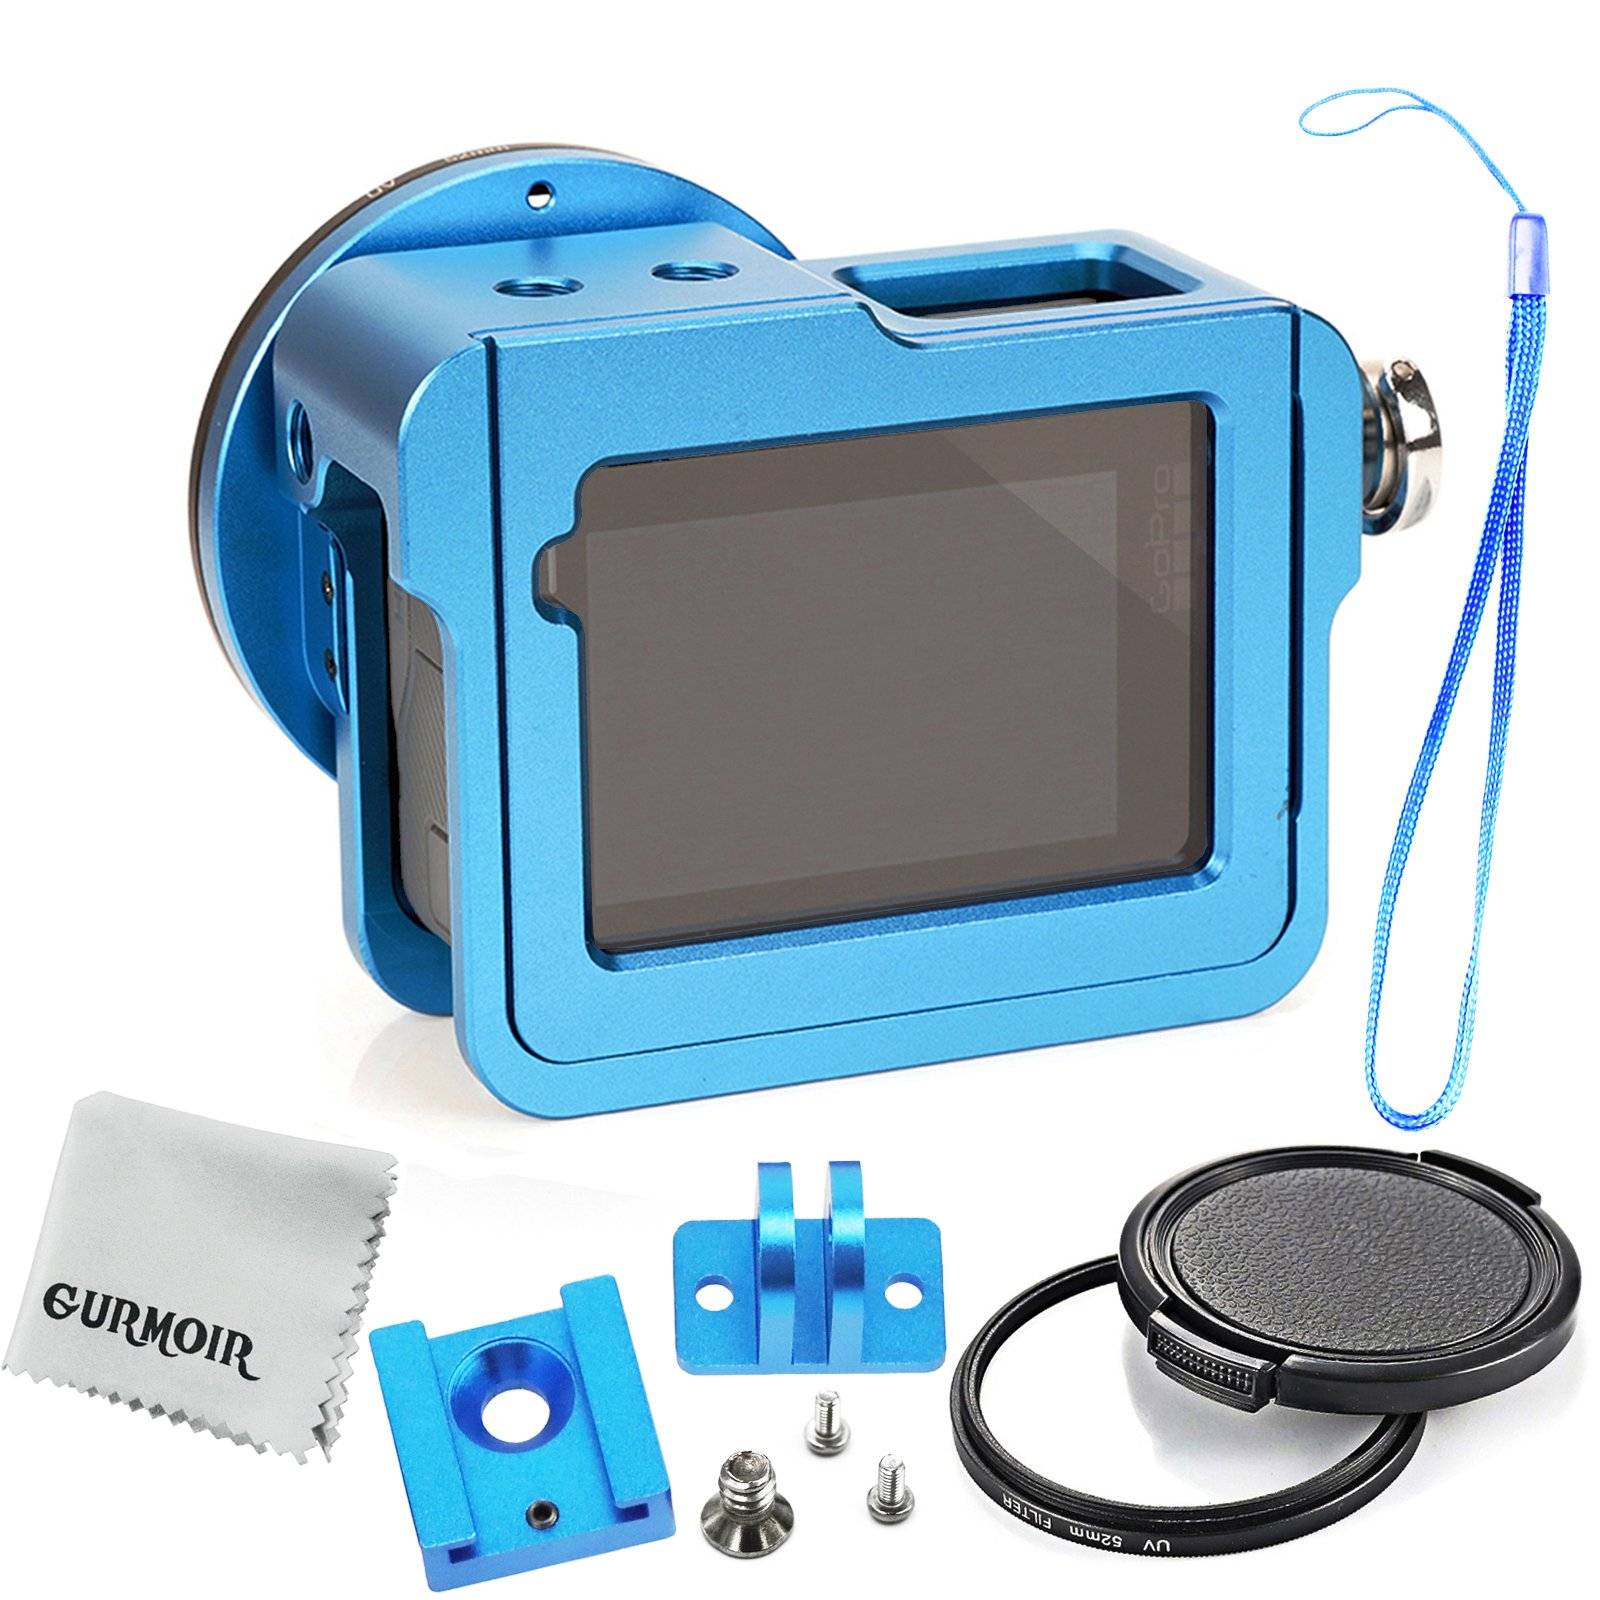 Gurmoir Aluminum Alloy Case Housing for Gopro Hero 6/Gopro HERO (2018) Action Camera (with Back Door)(Blue), Wire Connectable Protective Metal Skeleton Cage with 52 mm Filter